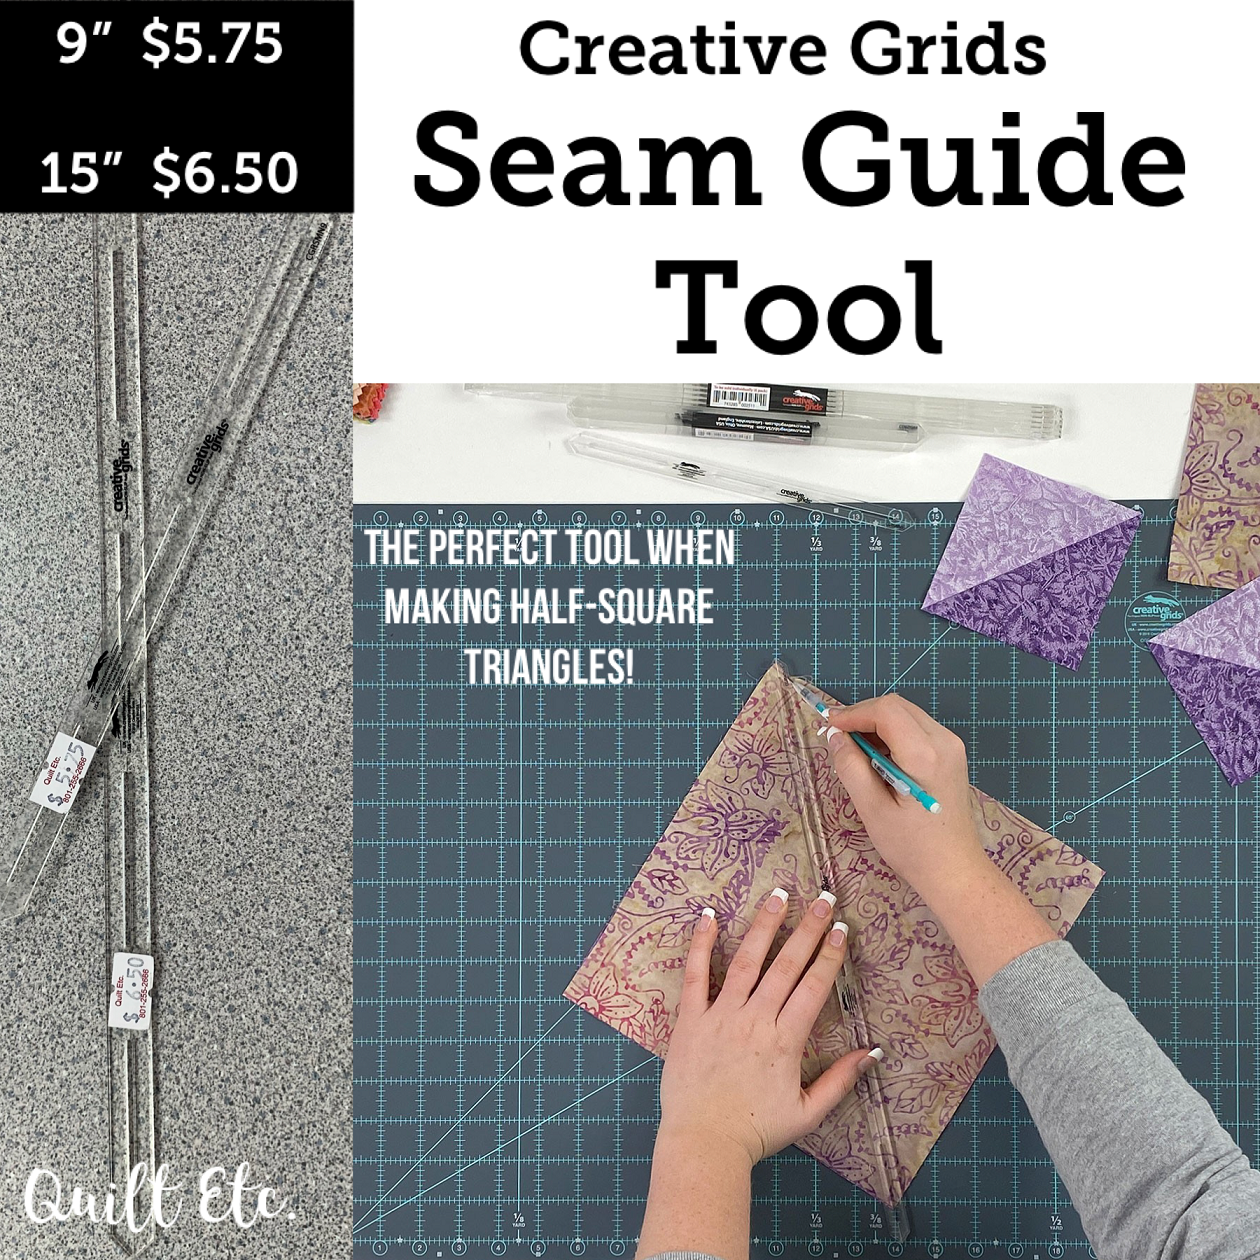 Creative Grids Seam Guide Tools